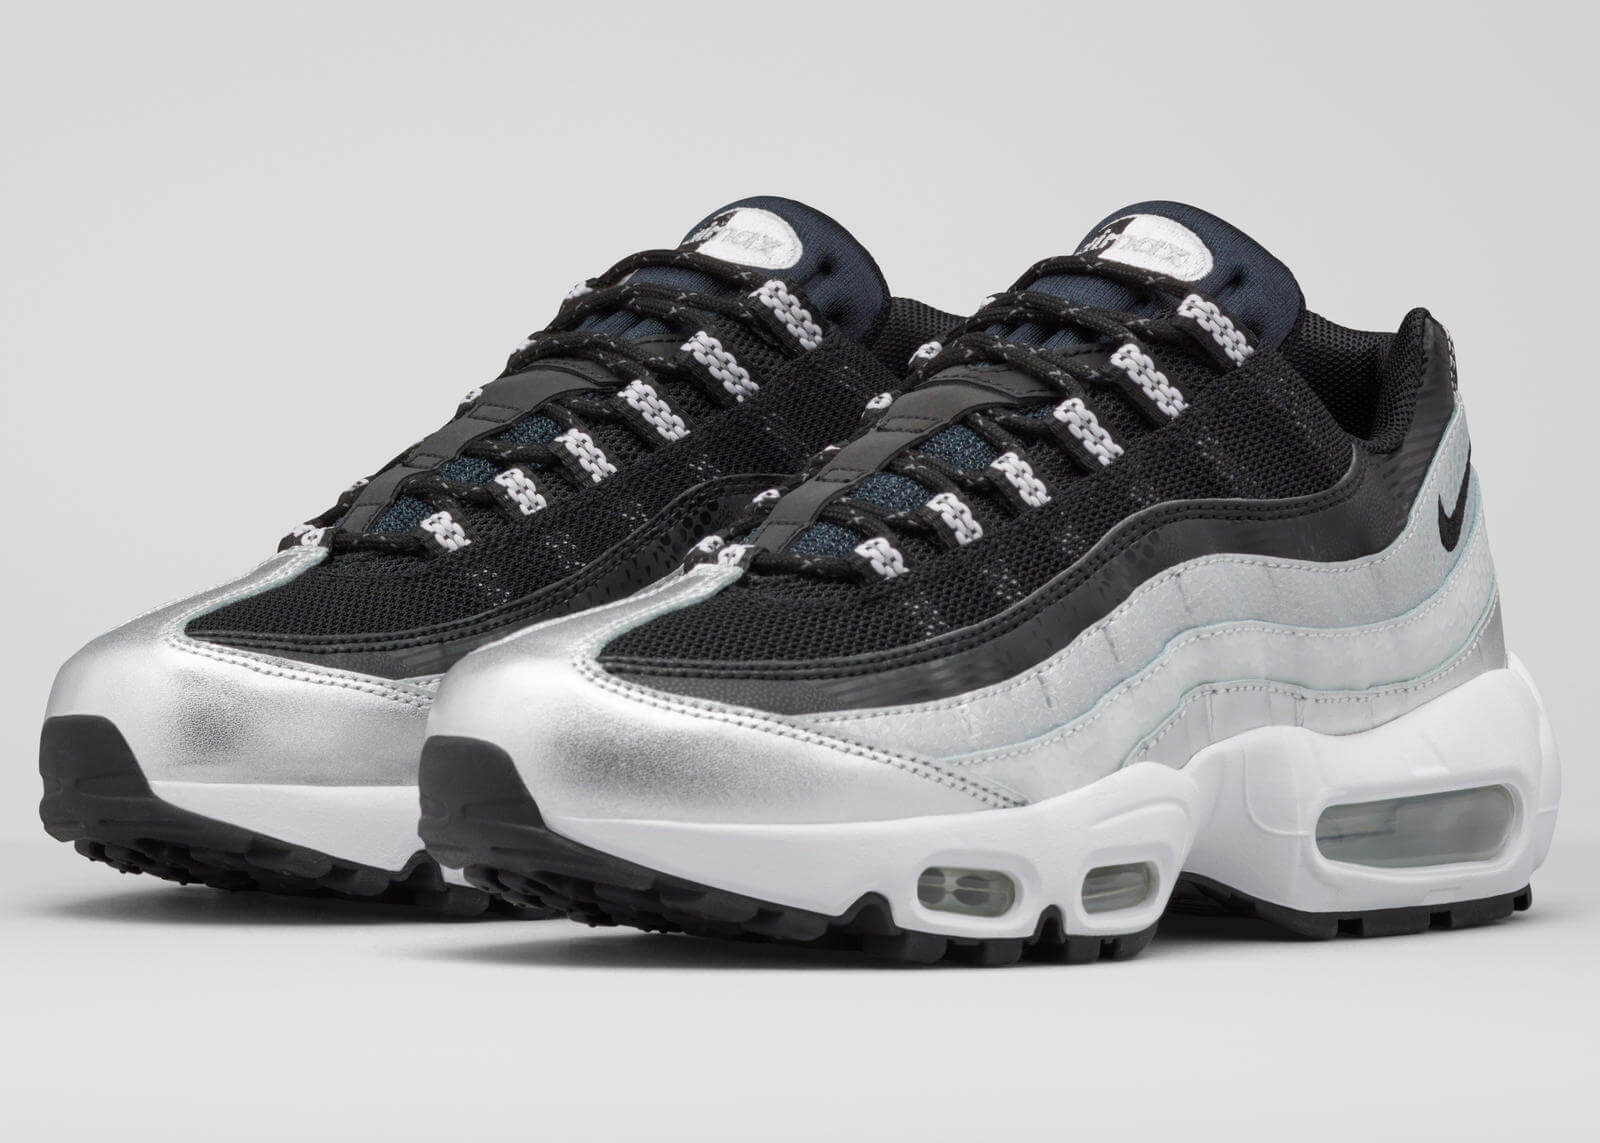 purchase cheap c960c ec309 ... reduced hvid sort nike air max 95 . c60de 27258